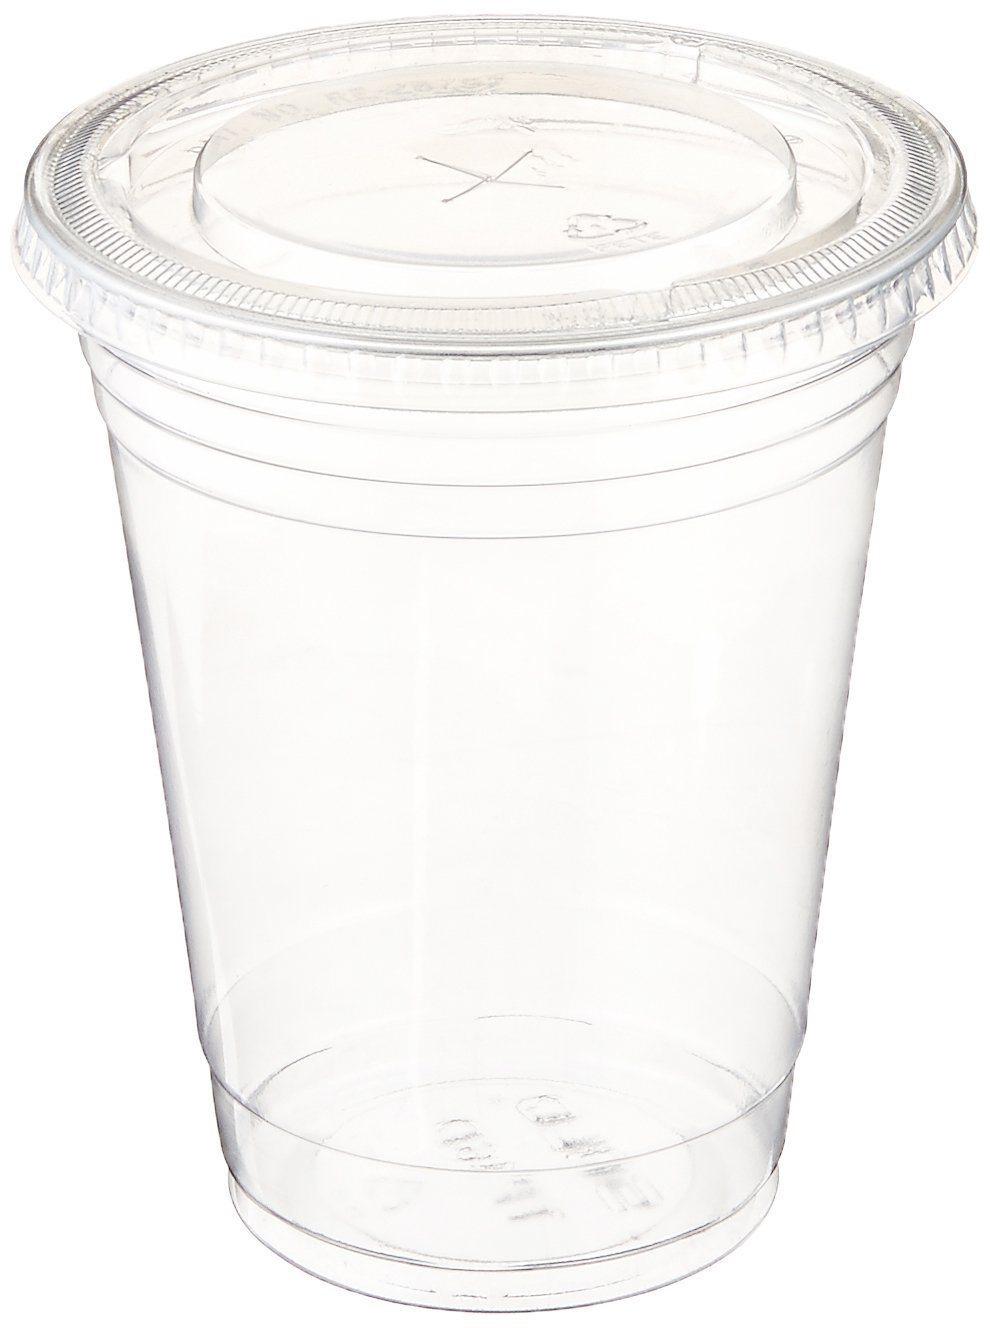 Table To Go Disposable Clear Plastic Cups with Flat Lids (600 Glasses & 600 Lids Pack/ 32 oz) | Crack-Resistant Drinking Glasses | 100% BPA-Free | Elegant Ultra-Clear Party Cup Set for Iced Coffee